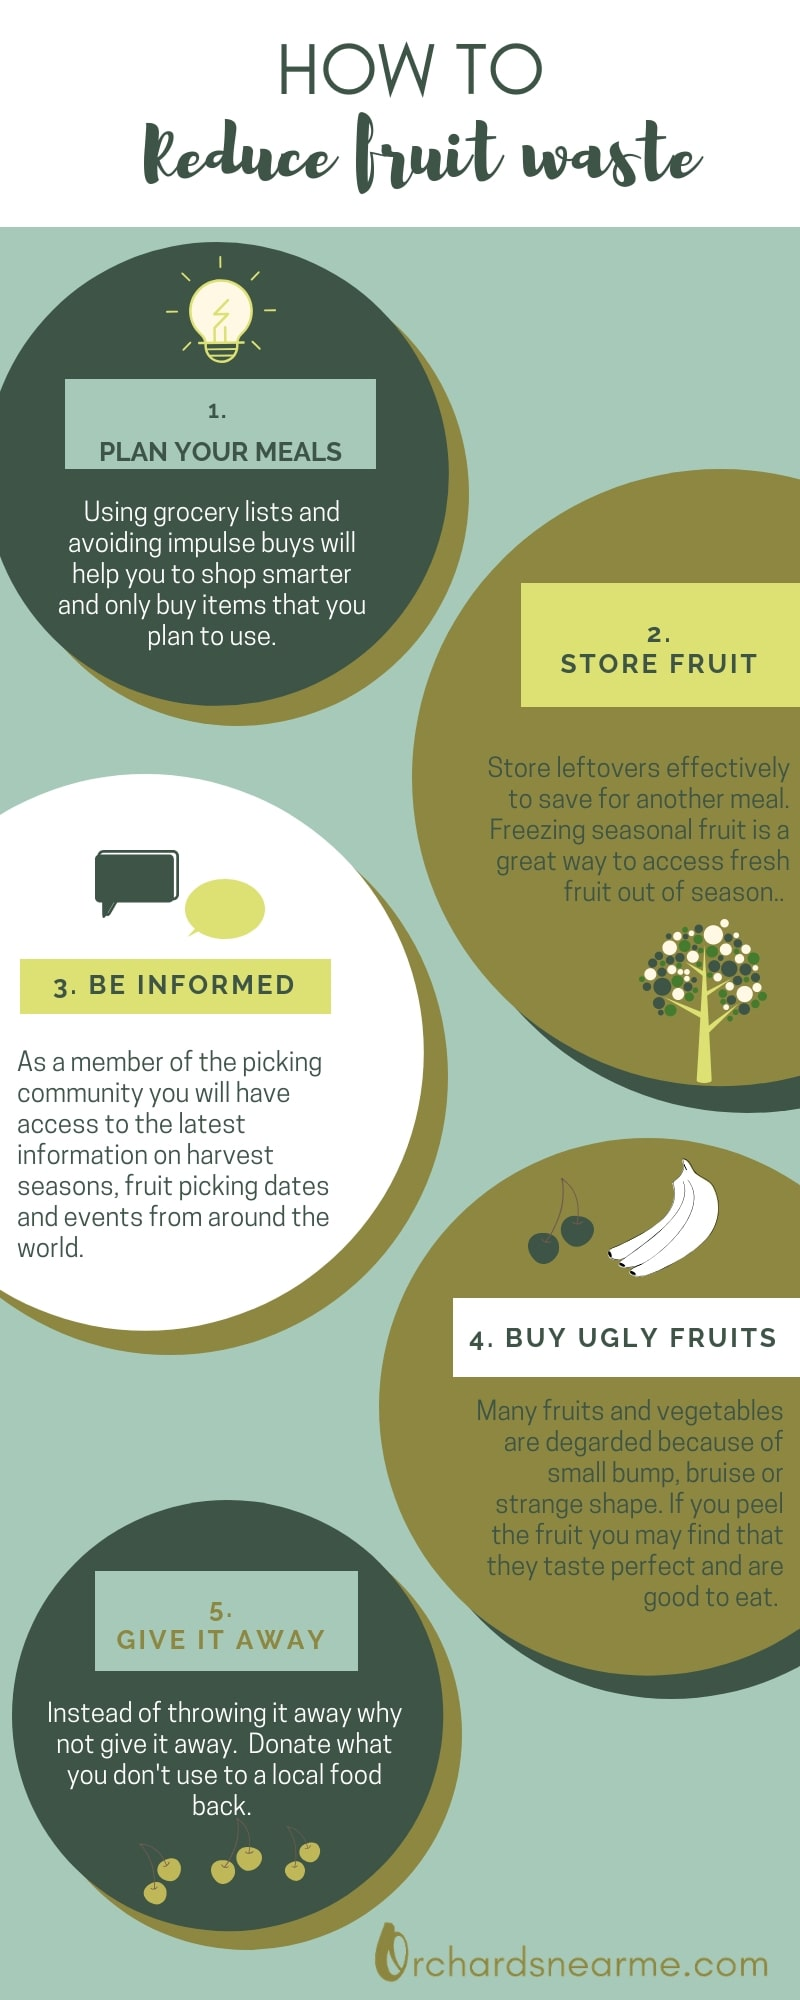 how-to-reduce-fruit-waste